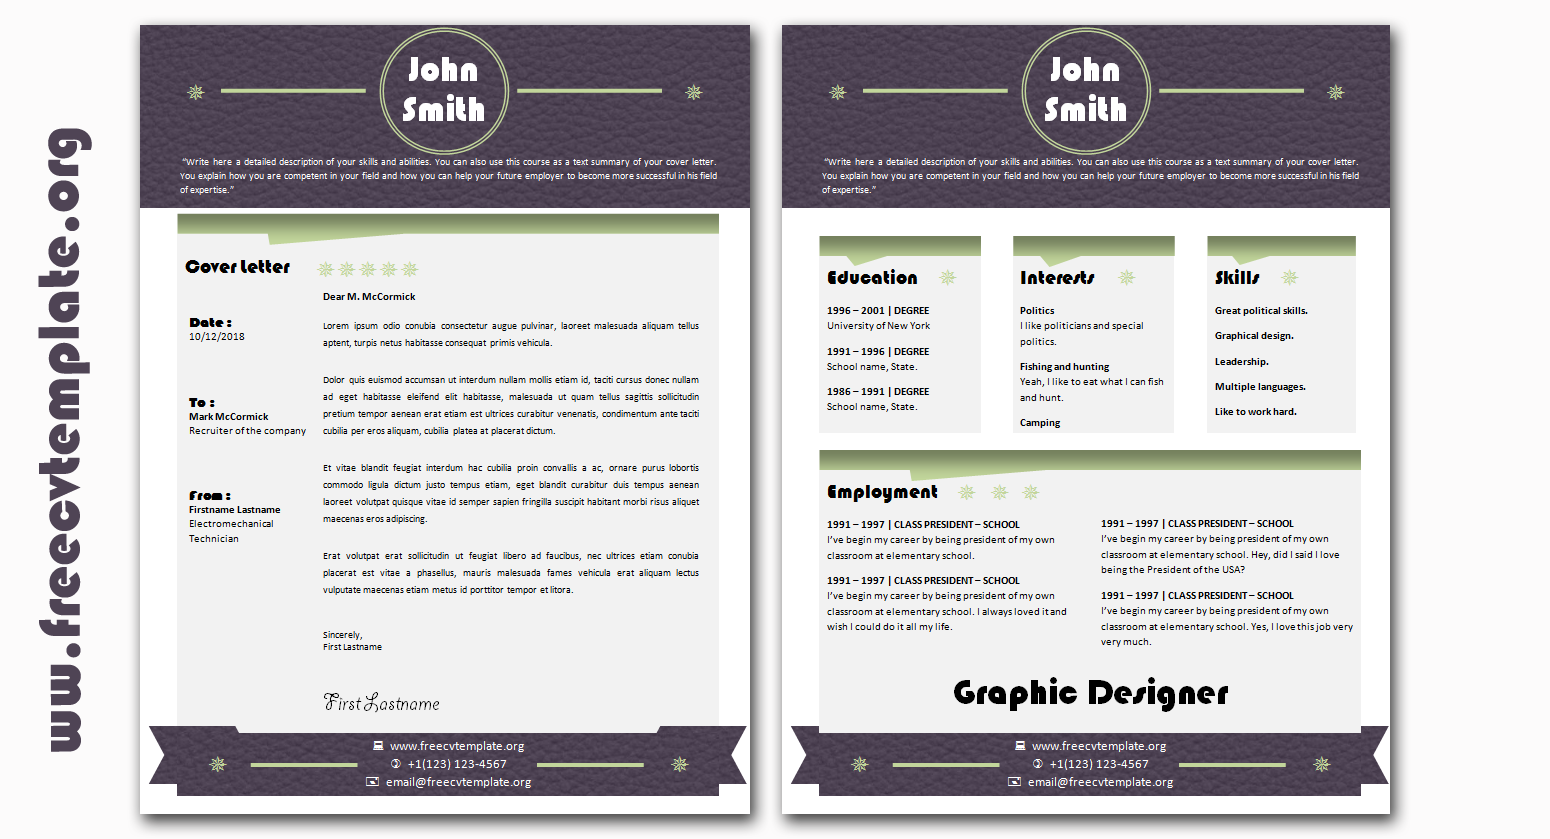 Creative Design Résumé and Cover Letter